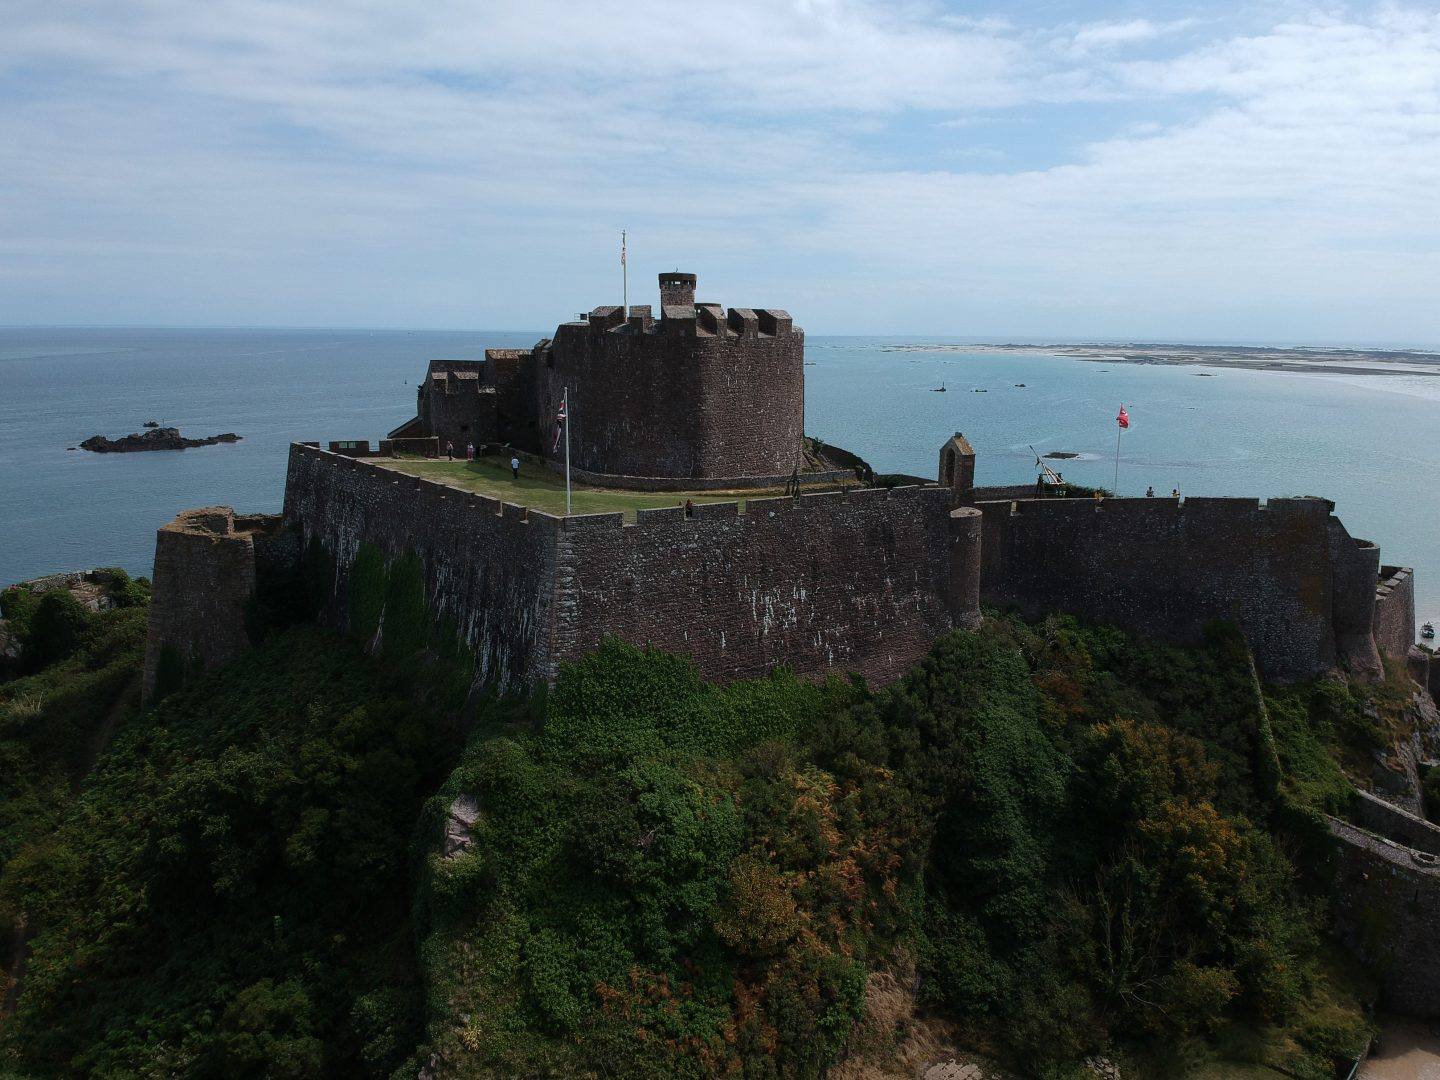 Four Fantastic Places For Families To Visit In Jersey